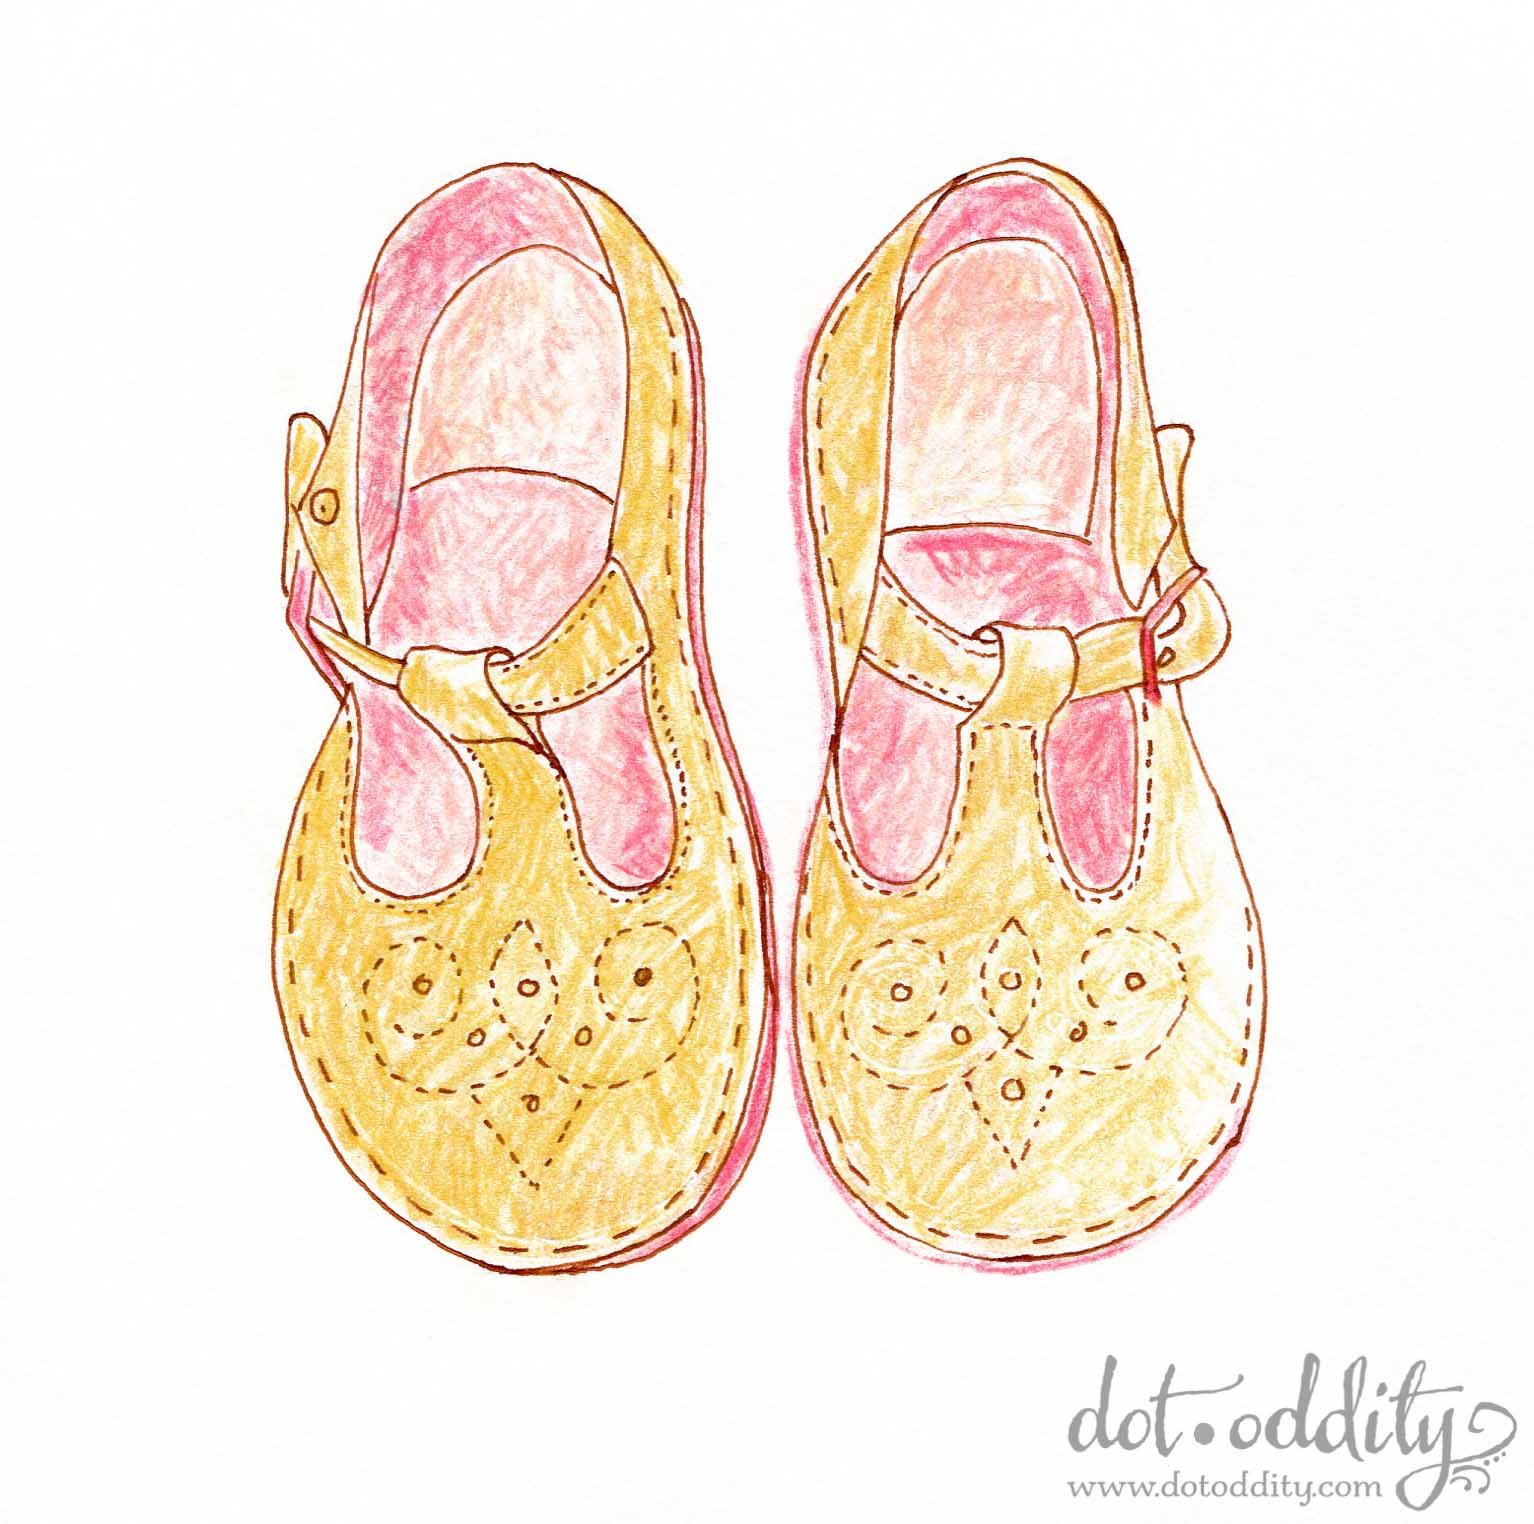 the little shoe project 2015 may by Maria Larsson